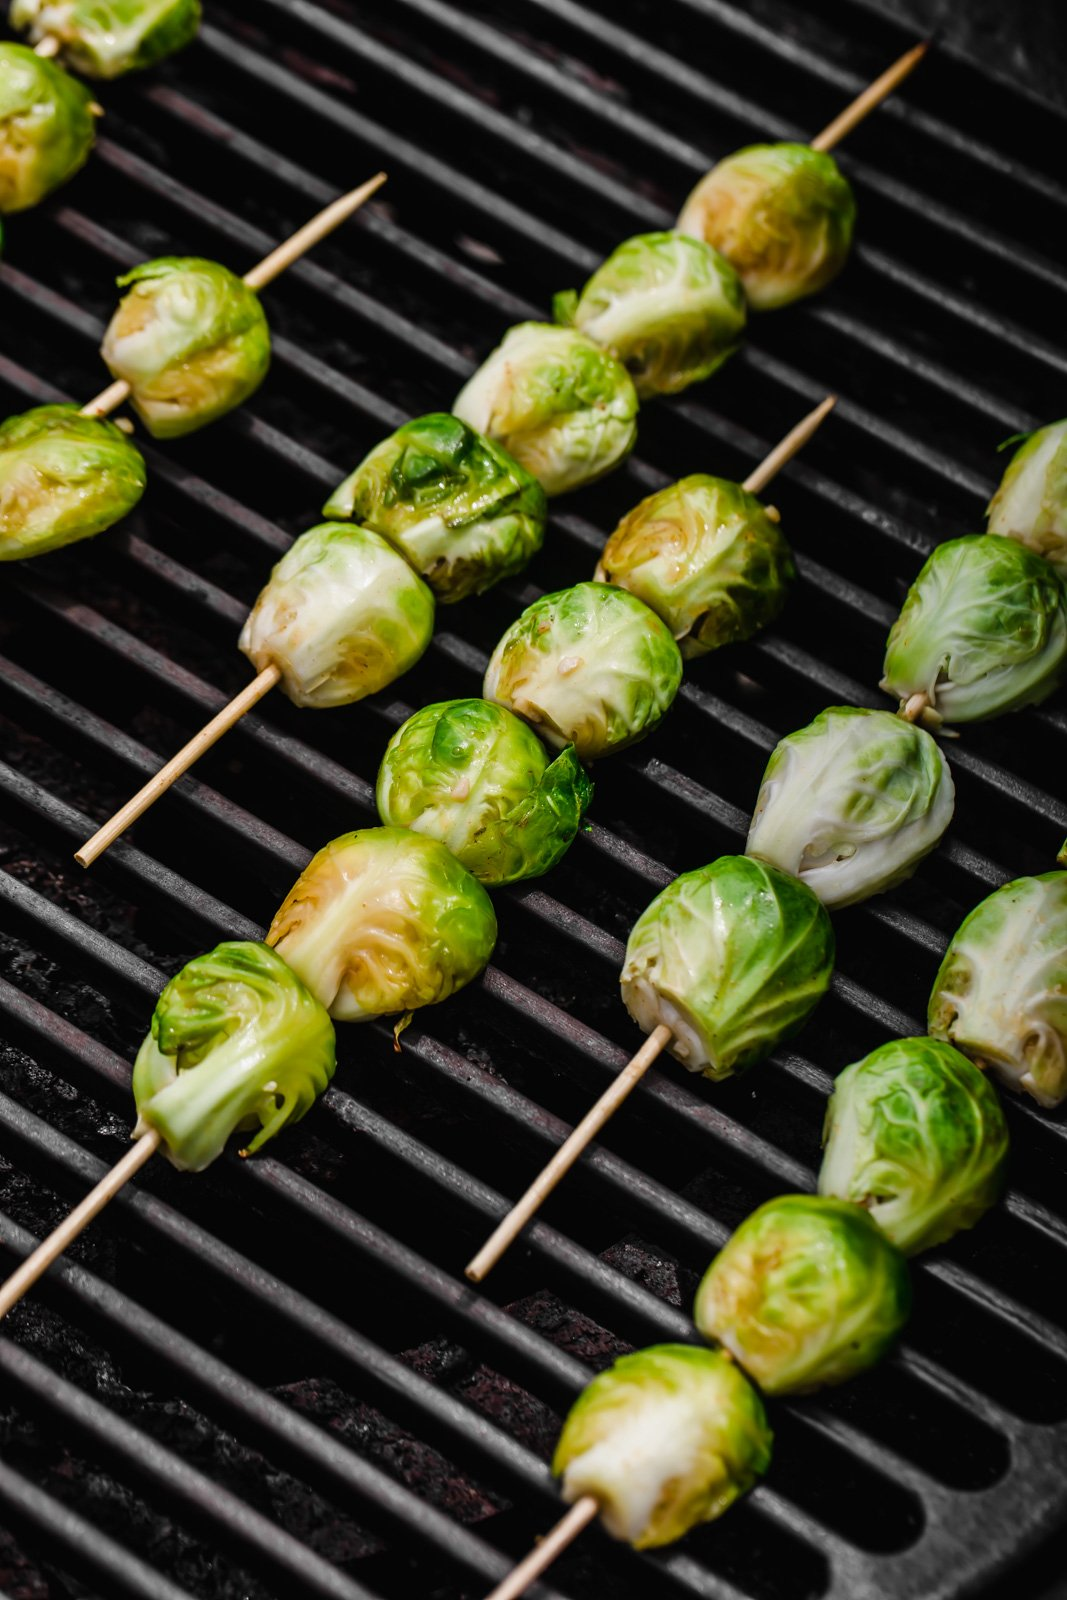 Spicy maple grilled brussels sprouts on skewers on top of a grill